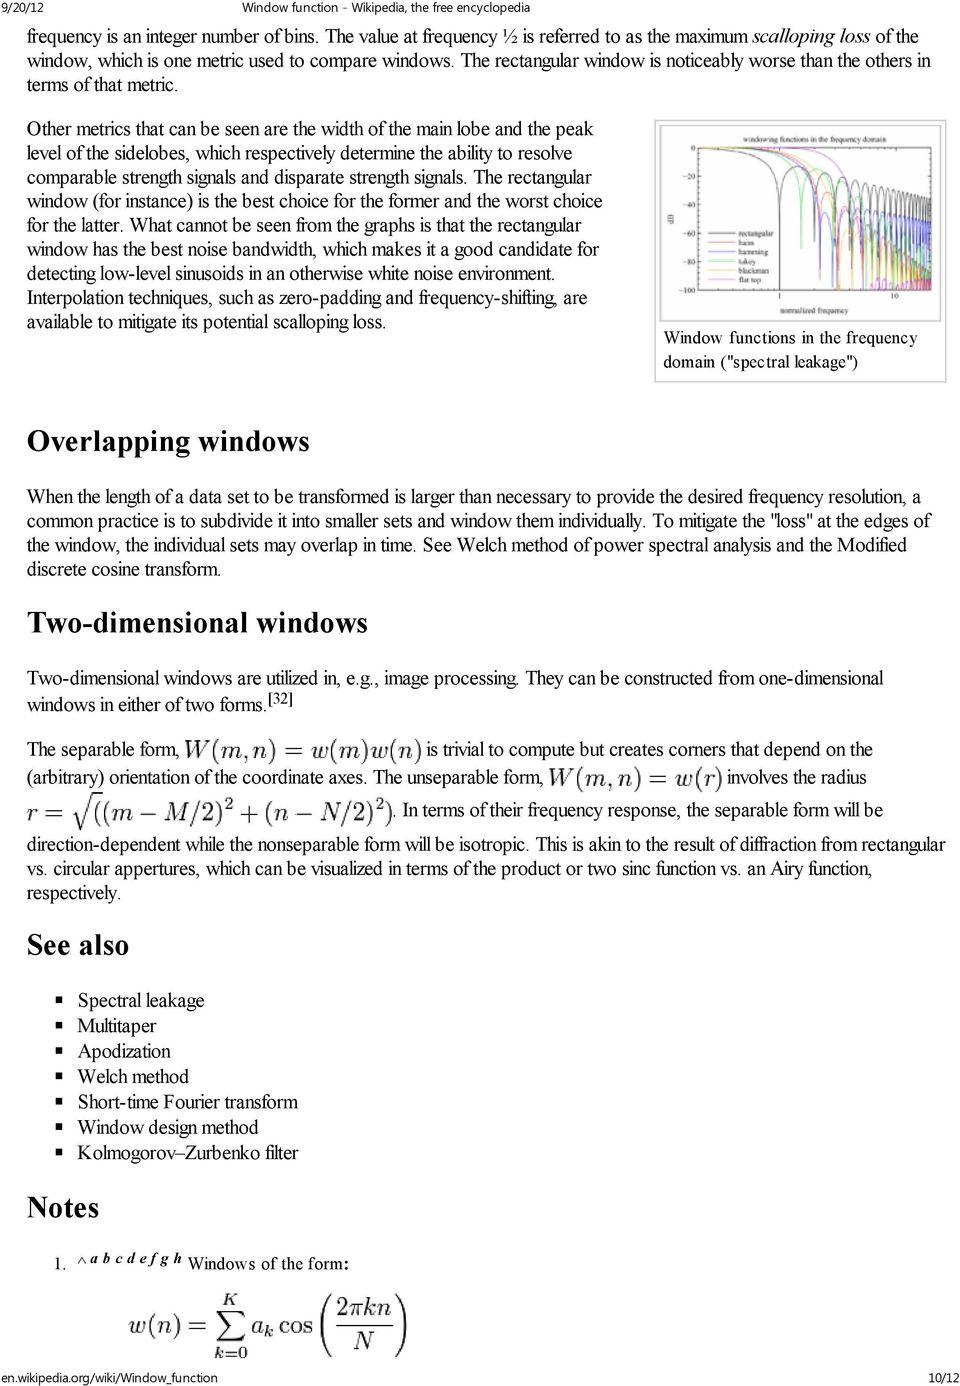 Window Function From Wikipedia The Free Encyclopedia For Term Electronic Filter Other Metrics That Can Be Seen Are Width Of Main Lobe And Peak